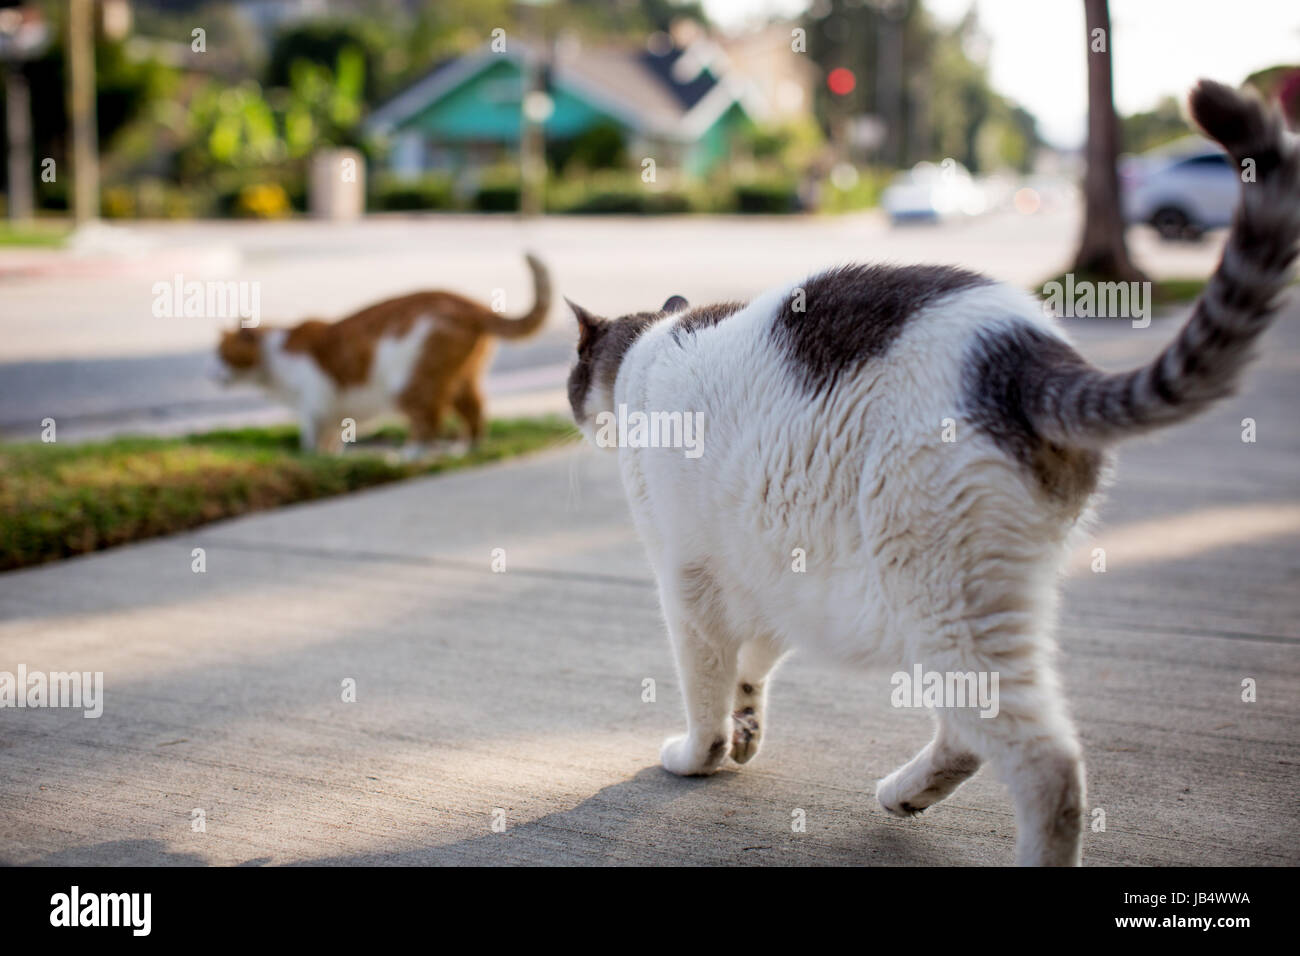 Two domestic cats in a residential setting walking toward street, both with their tails up and curved. - Stock Image